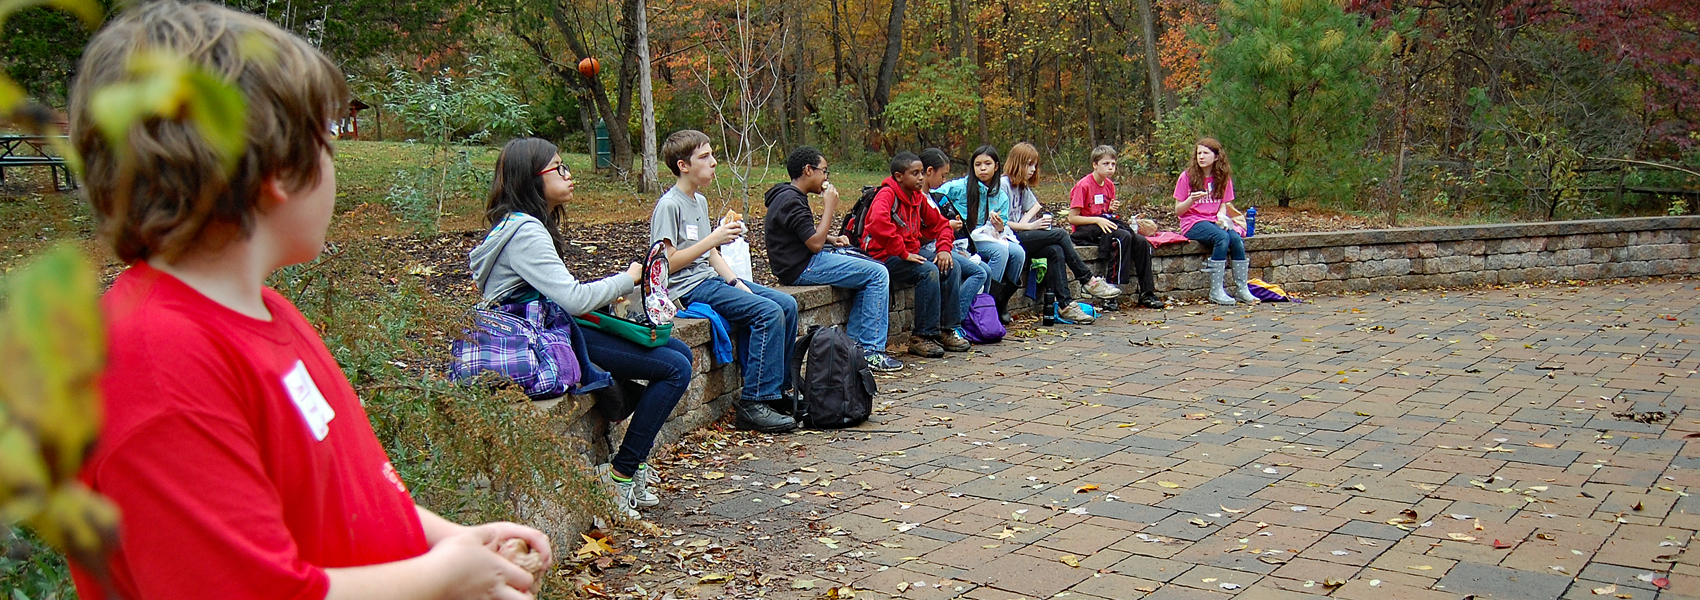 Students sit on a wall and take a lunch break during a class